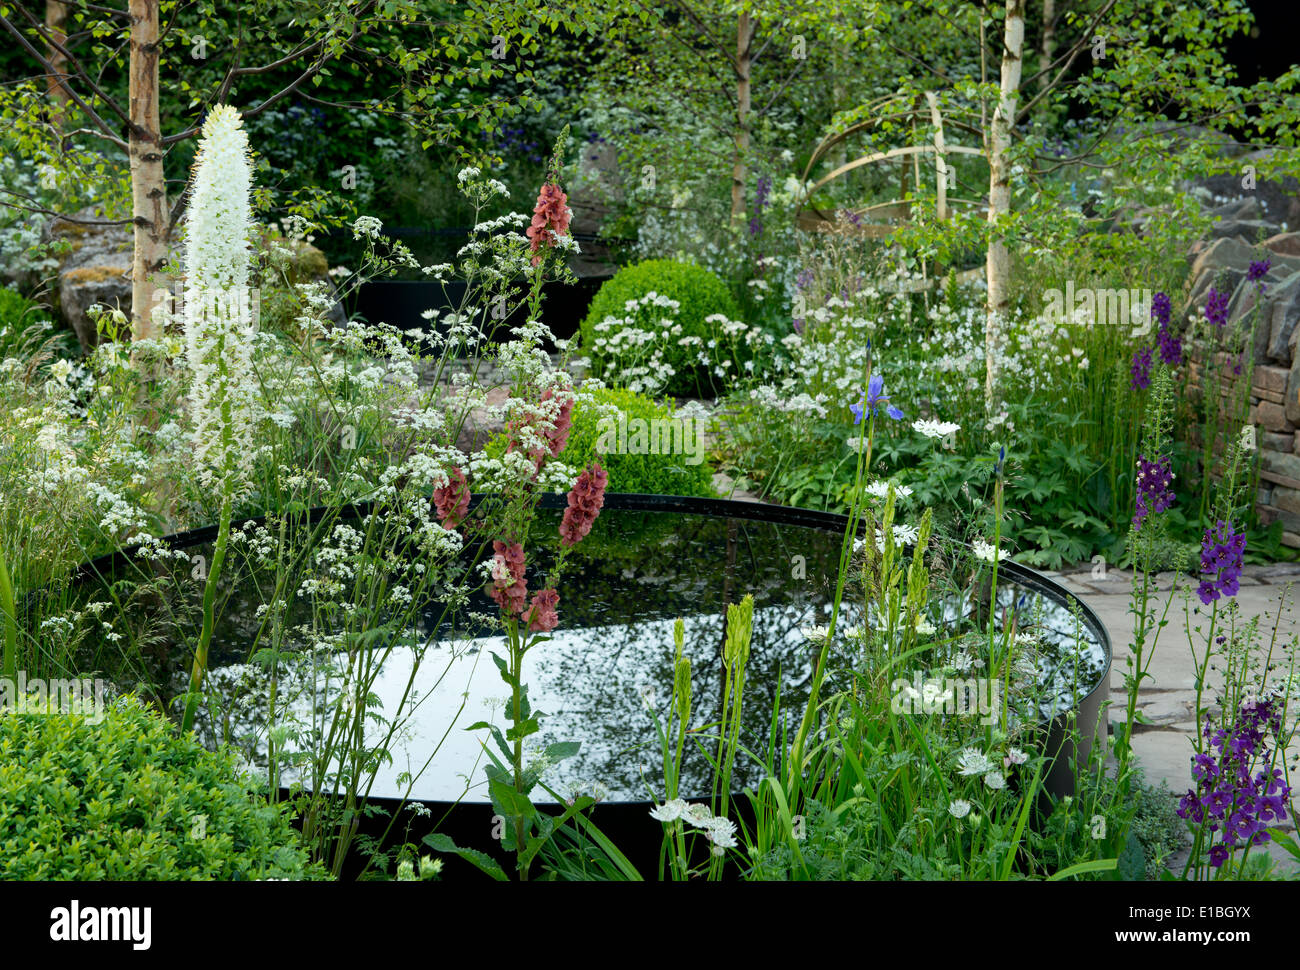 A section of the Vital Earth Night Sky Garden at the Chelsea Flower Show, London, UK - Stock Image